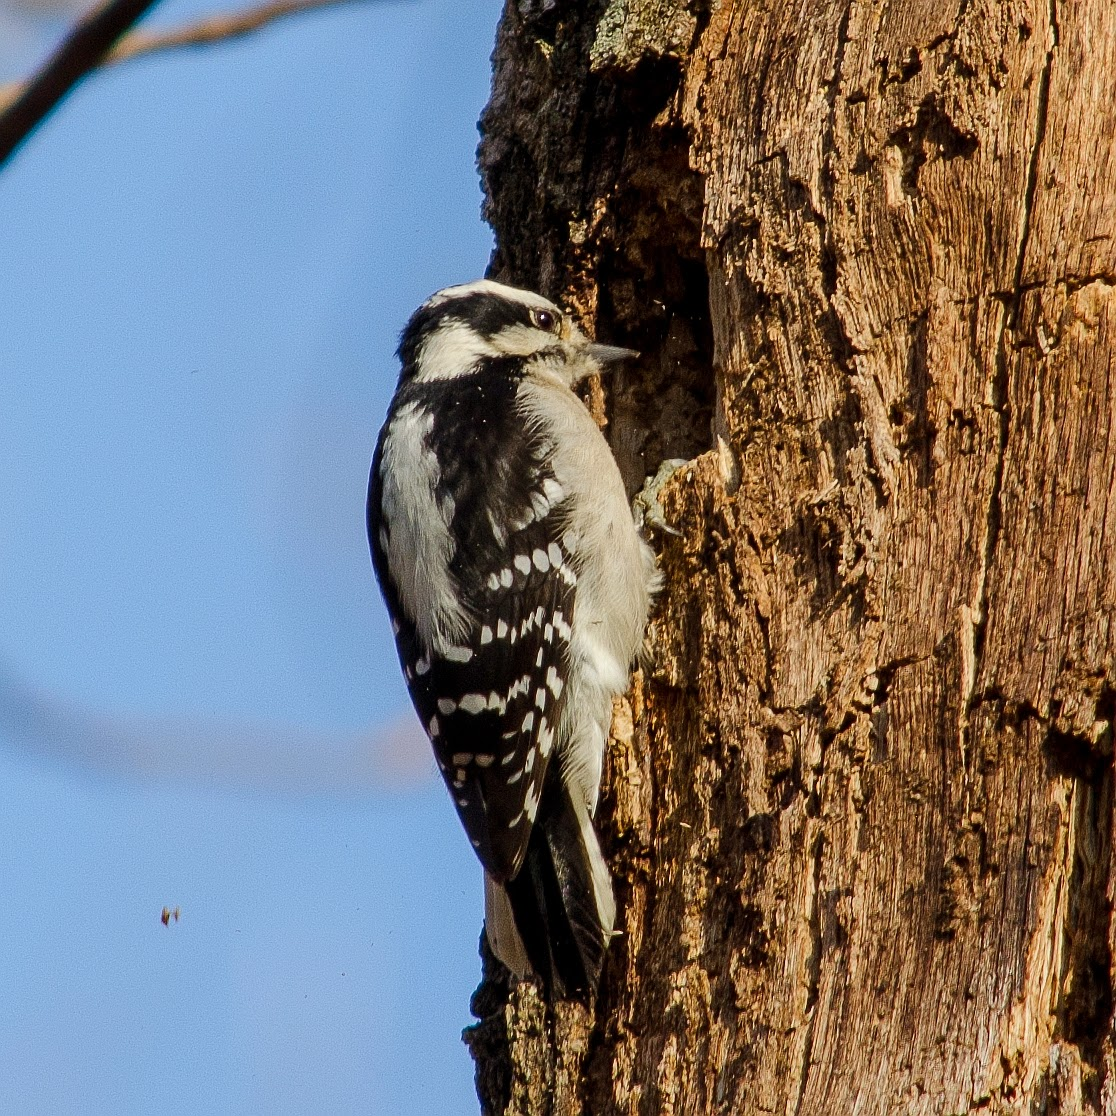 Downy Woodpecker Excavating